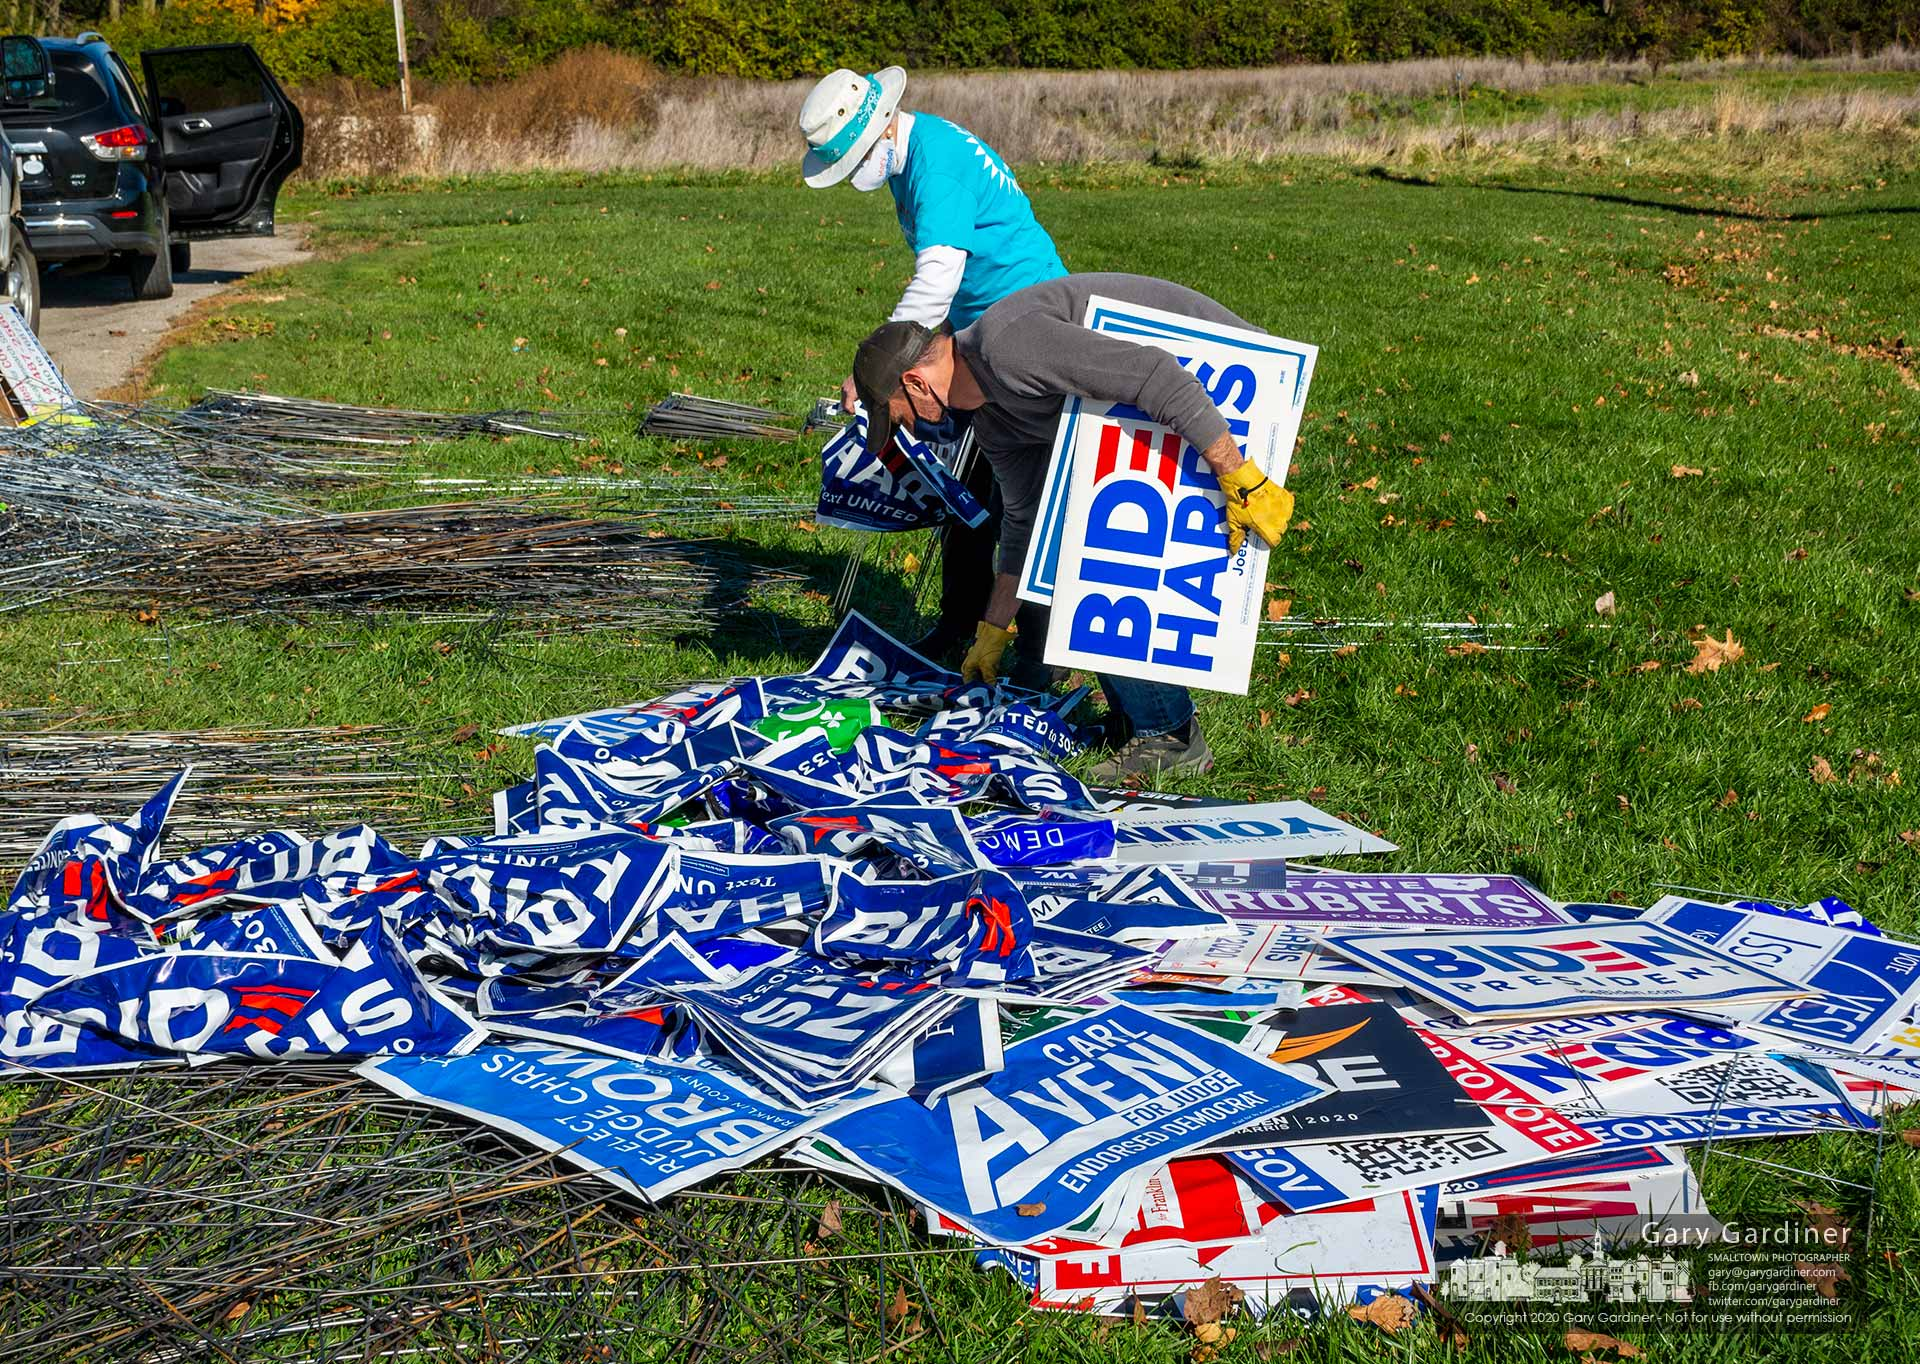 Workers collect 2020 election signs for recycling at a Columbus, Ohio, dropoff Saturday where the plastic signs and their metal holders are separated and sent to recyclers. My Final Photo for Nov. 7, 2020.